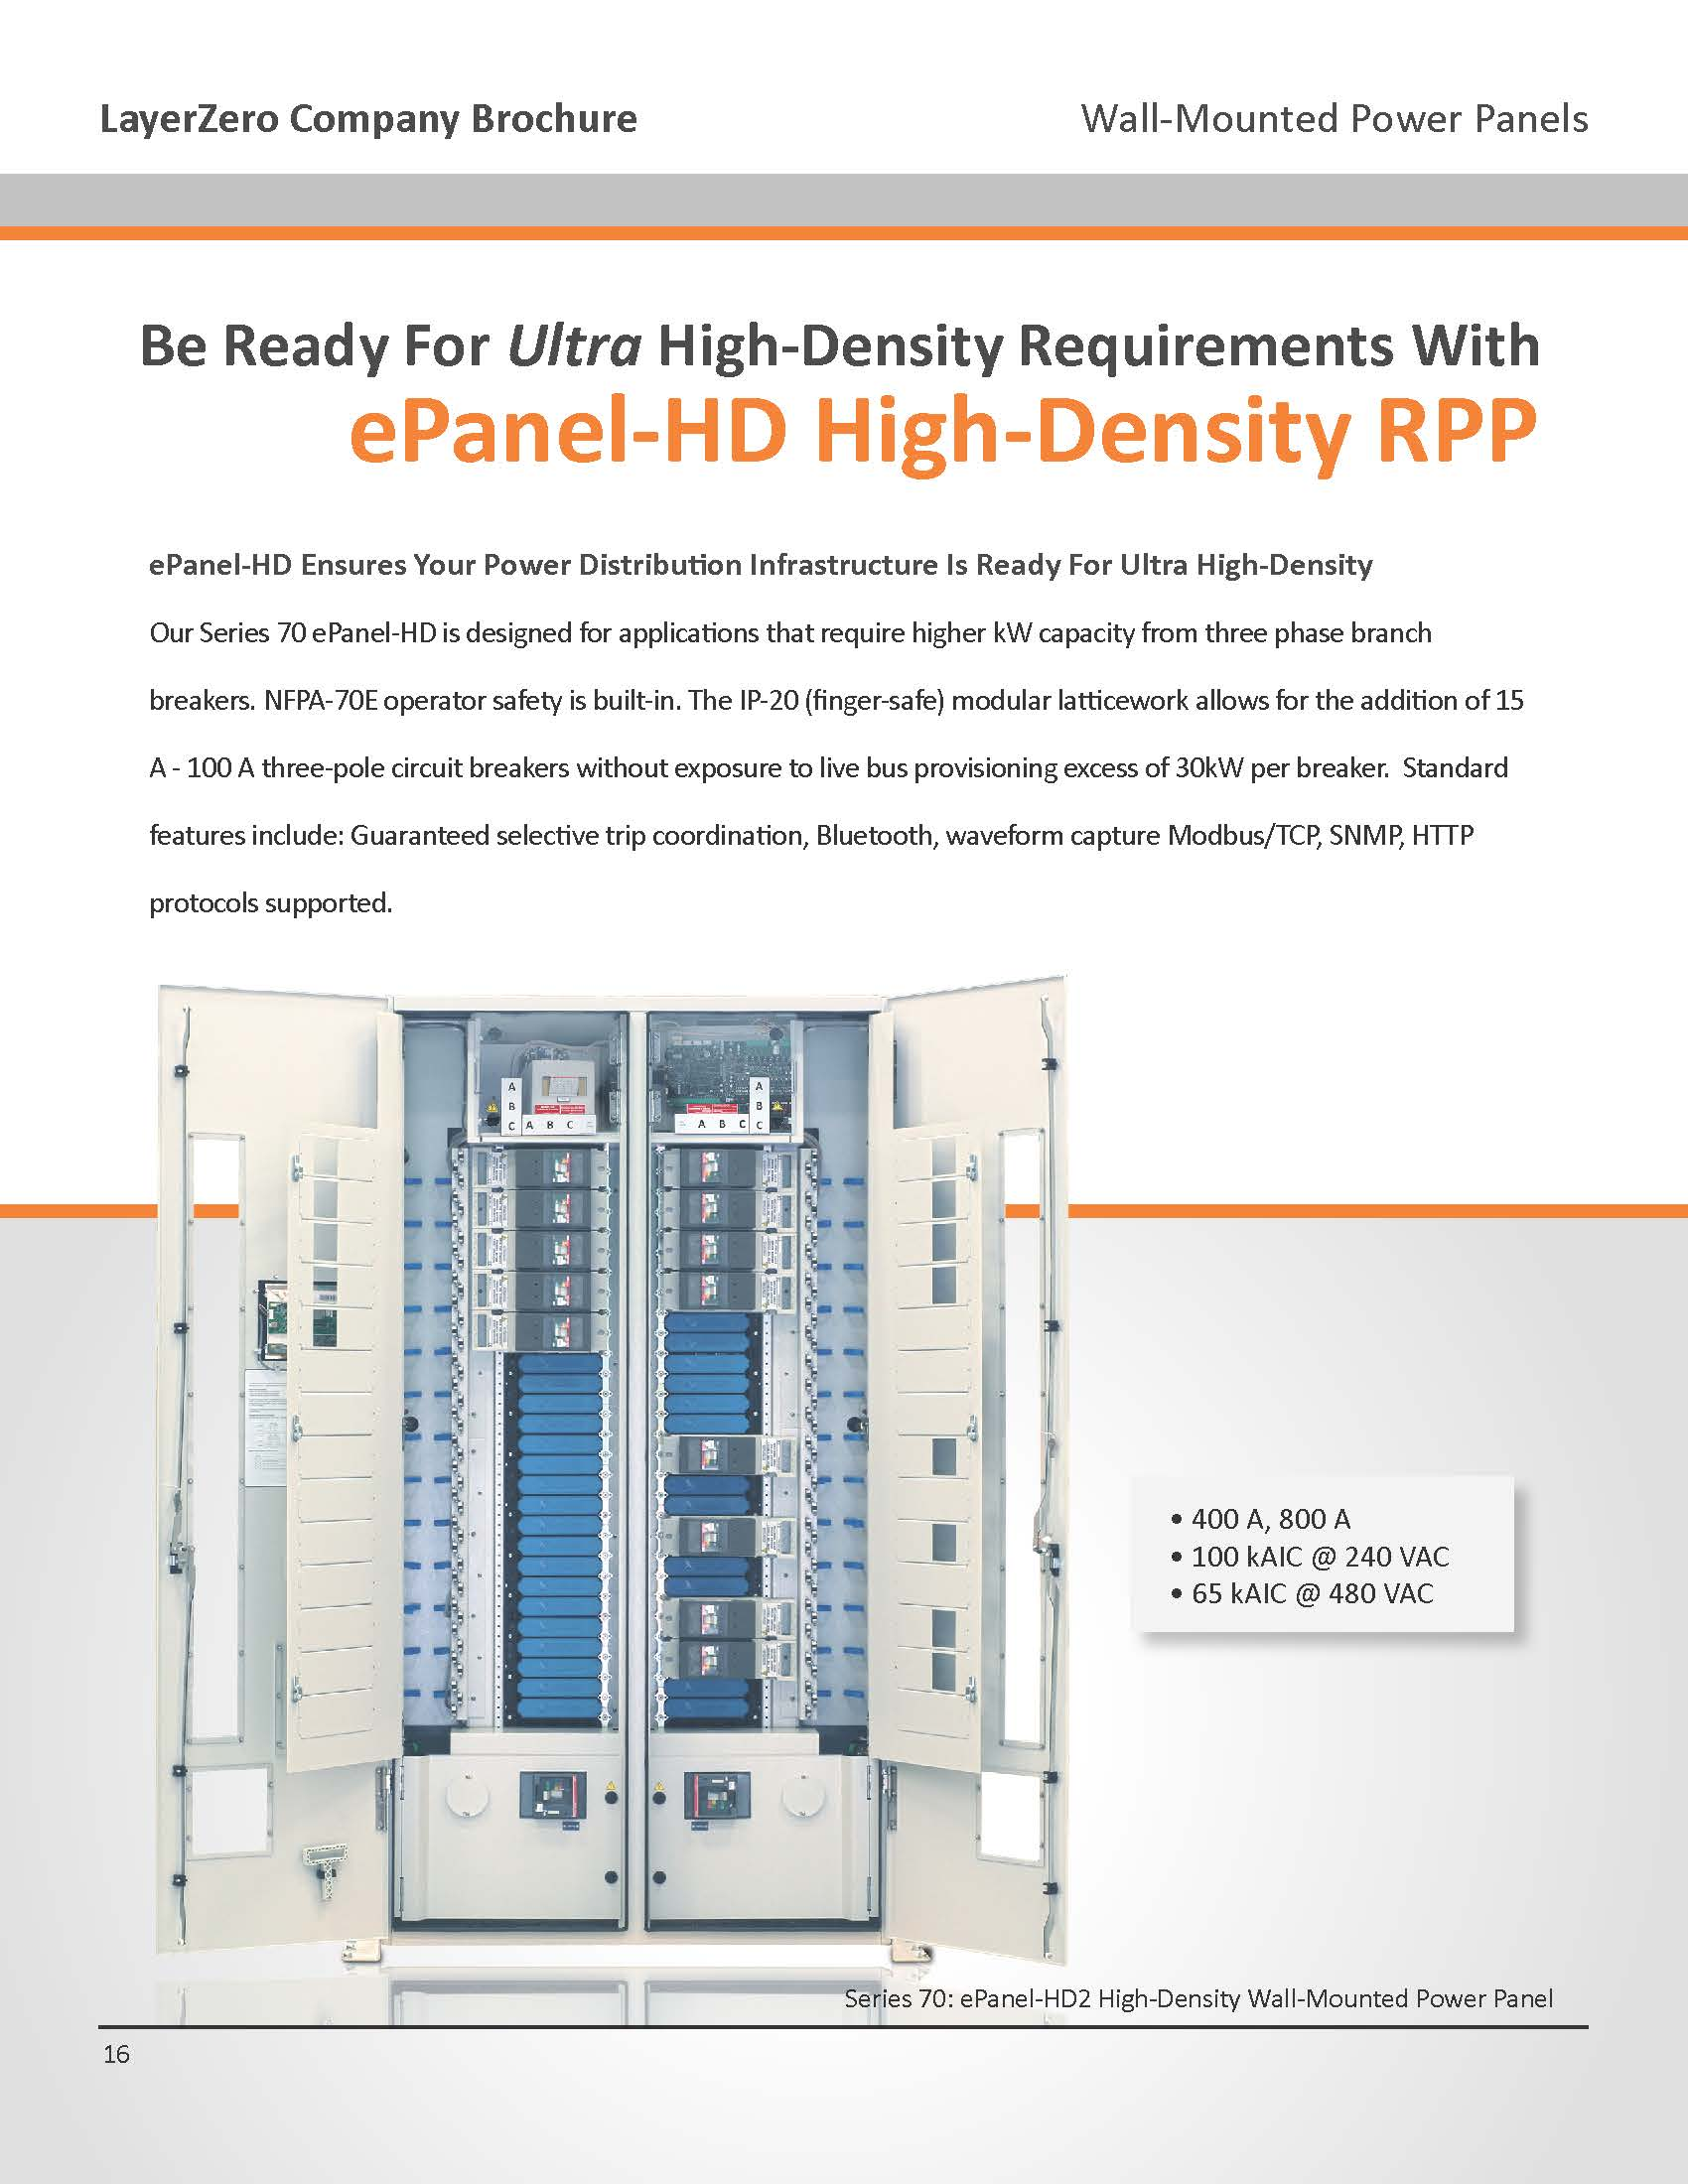 Download The Layerzero Power Systems Brochure Snmp Wiring Diagram Product Brochures